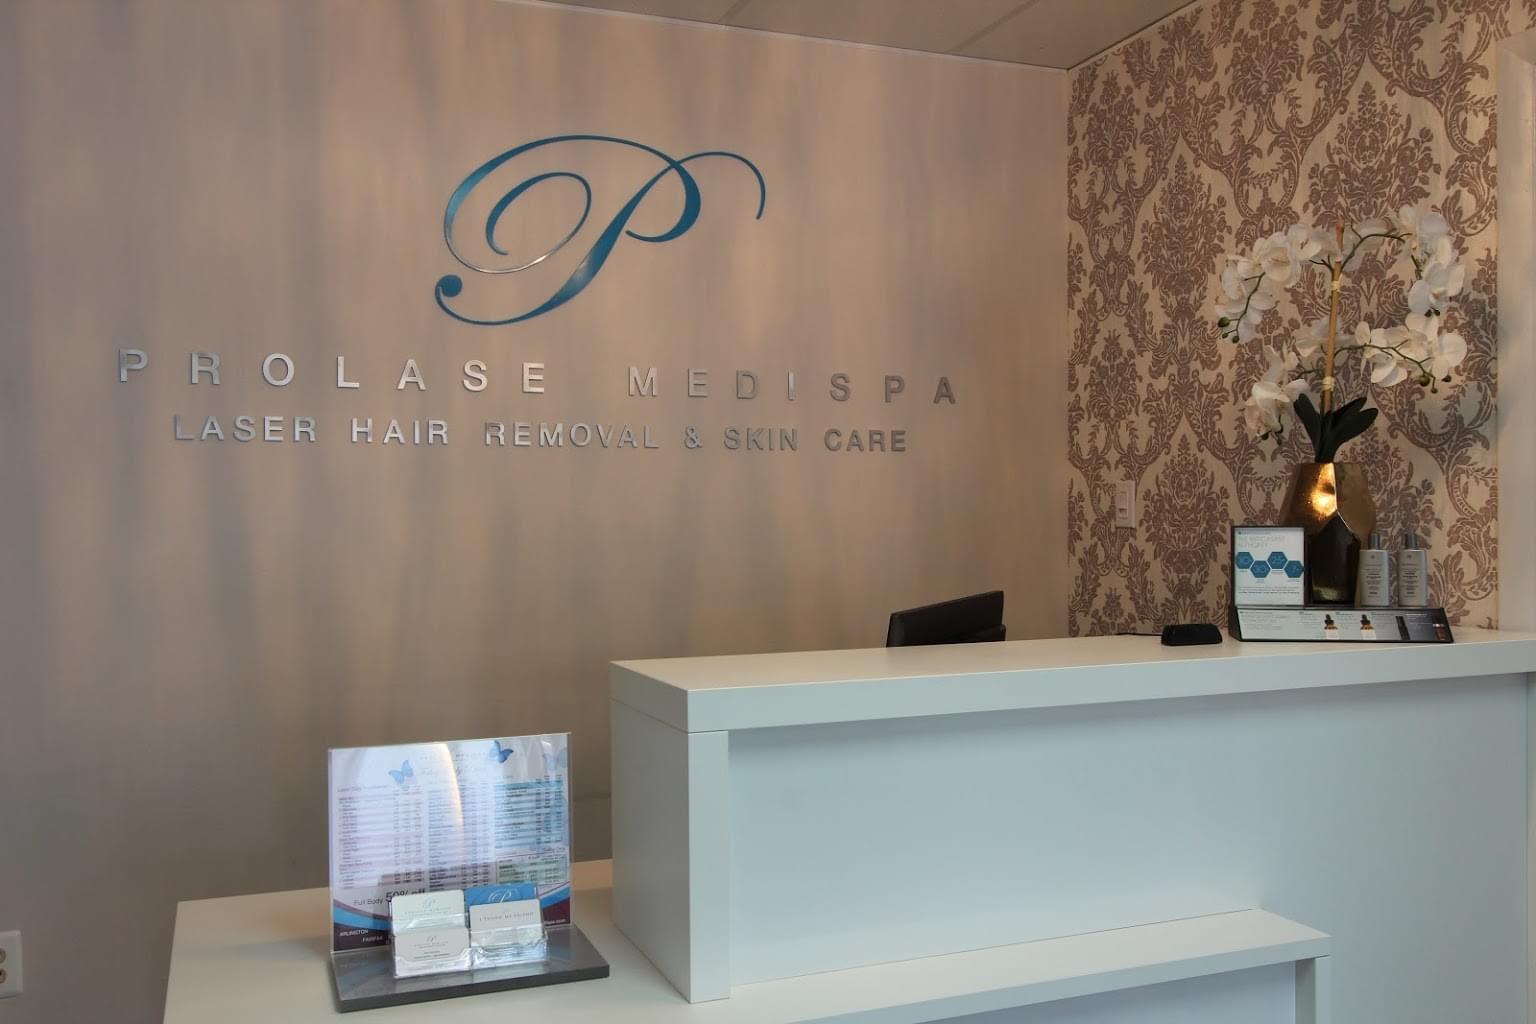 Prolase Medispa medical spa in Burke, VA